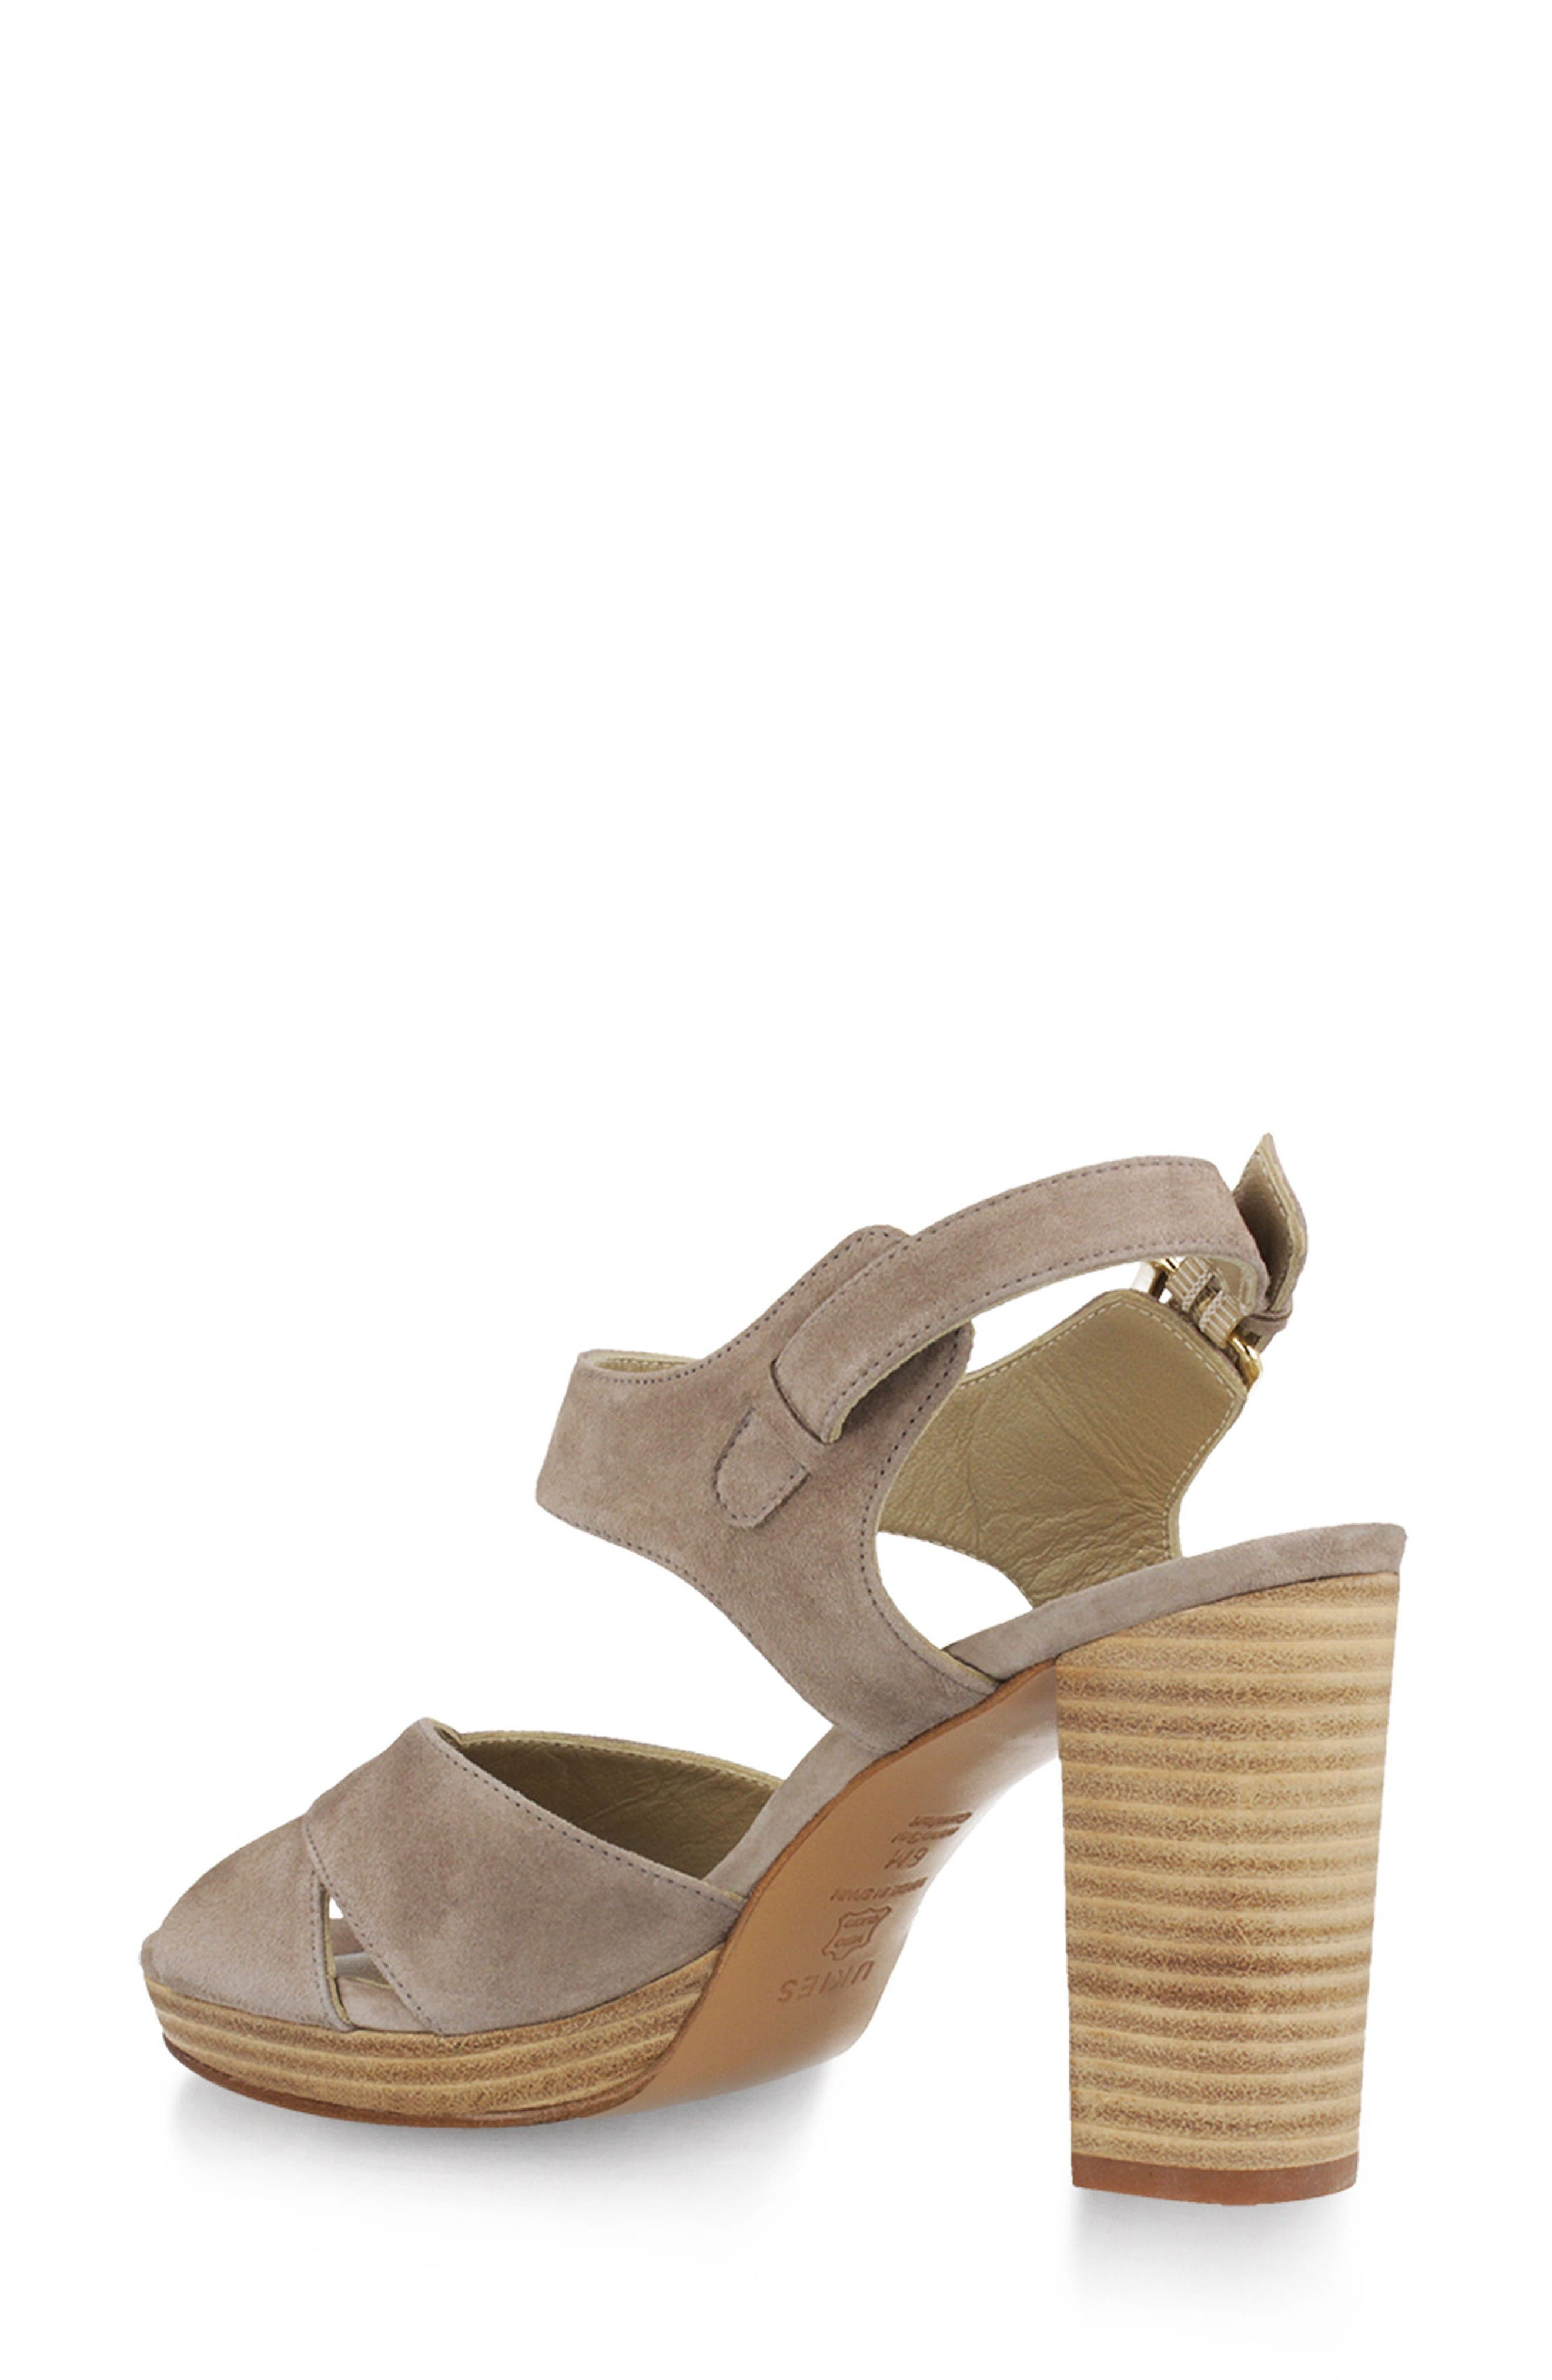 Tango Sandal,                             Alternate thumbnail 2, color,                             Taupe Suede